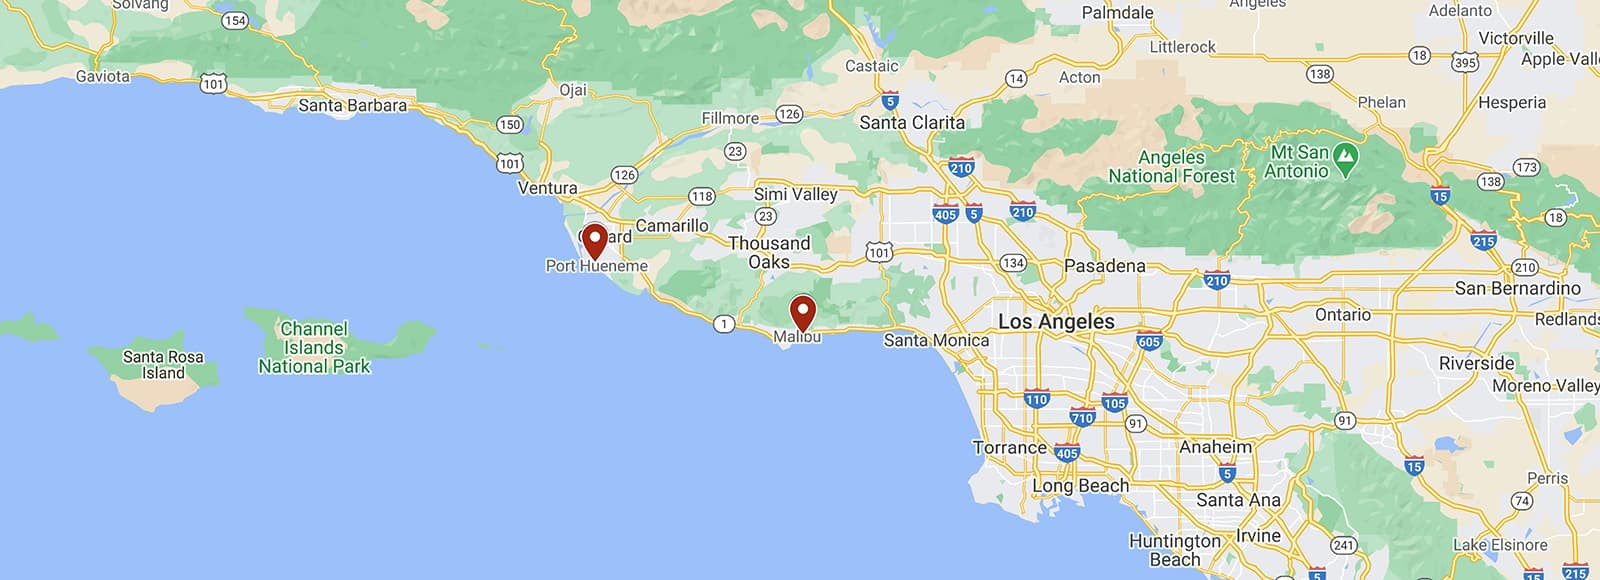 Passages Addiction Treatment Facility Locations